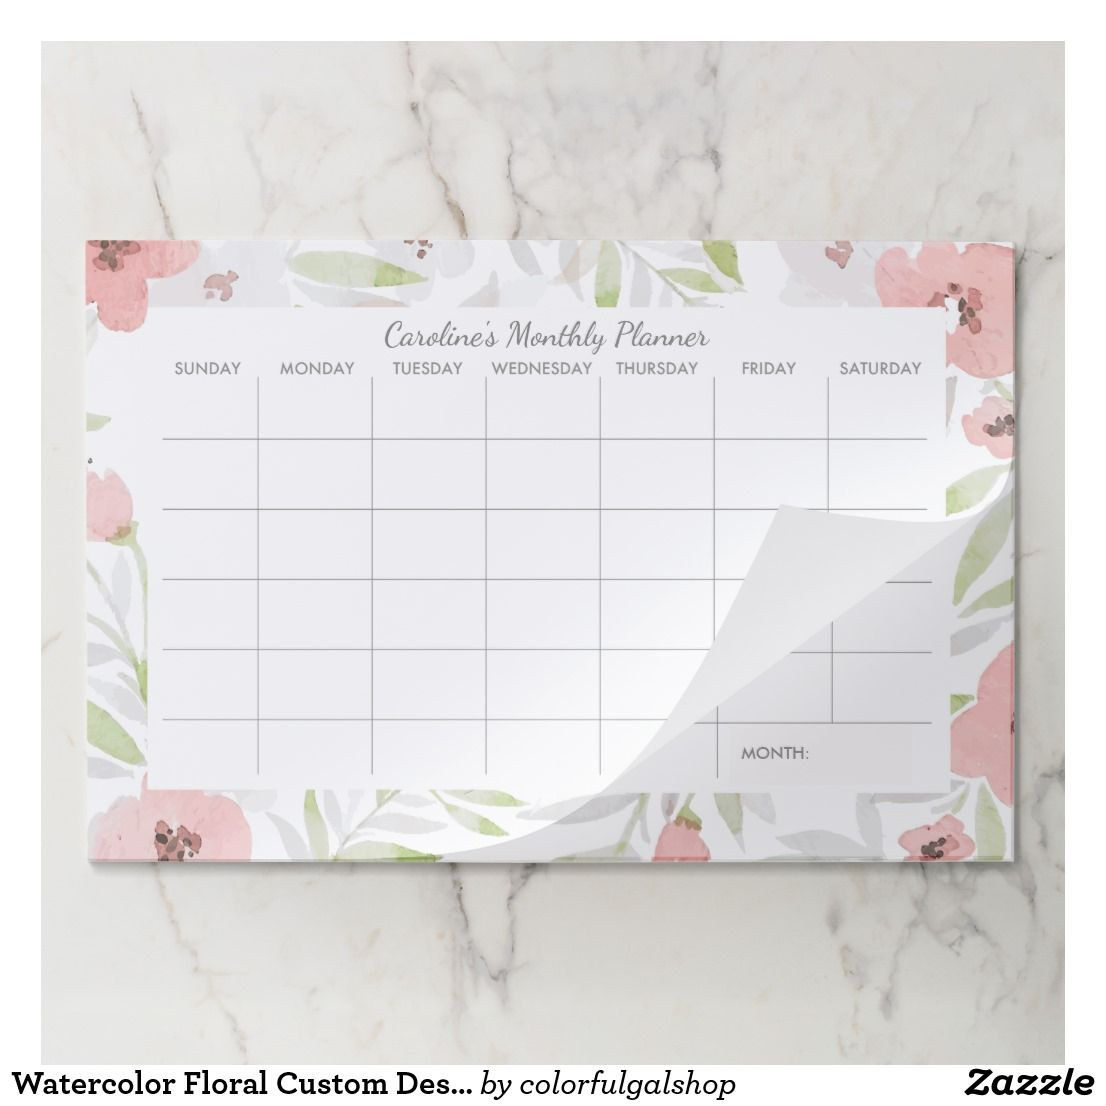 Watercolor Floral Custom Desk Pad Monthly Calendar Zazzle Com Custom Desk Floral Watercolor Floral